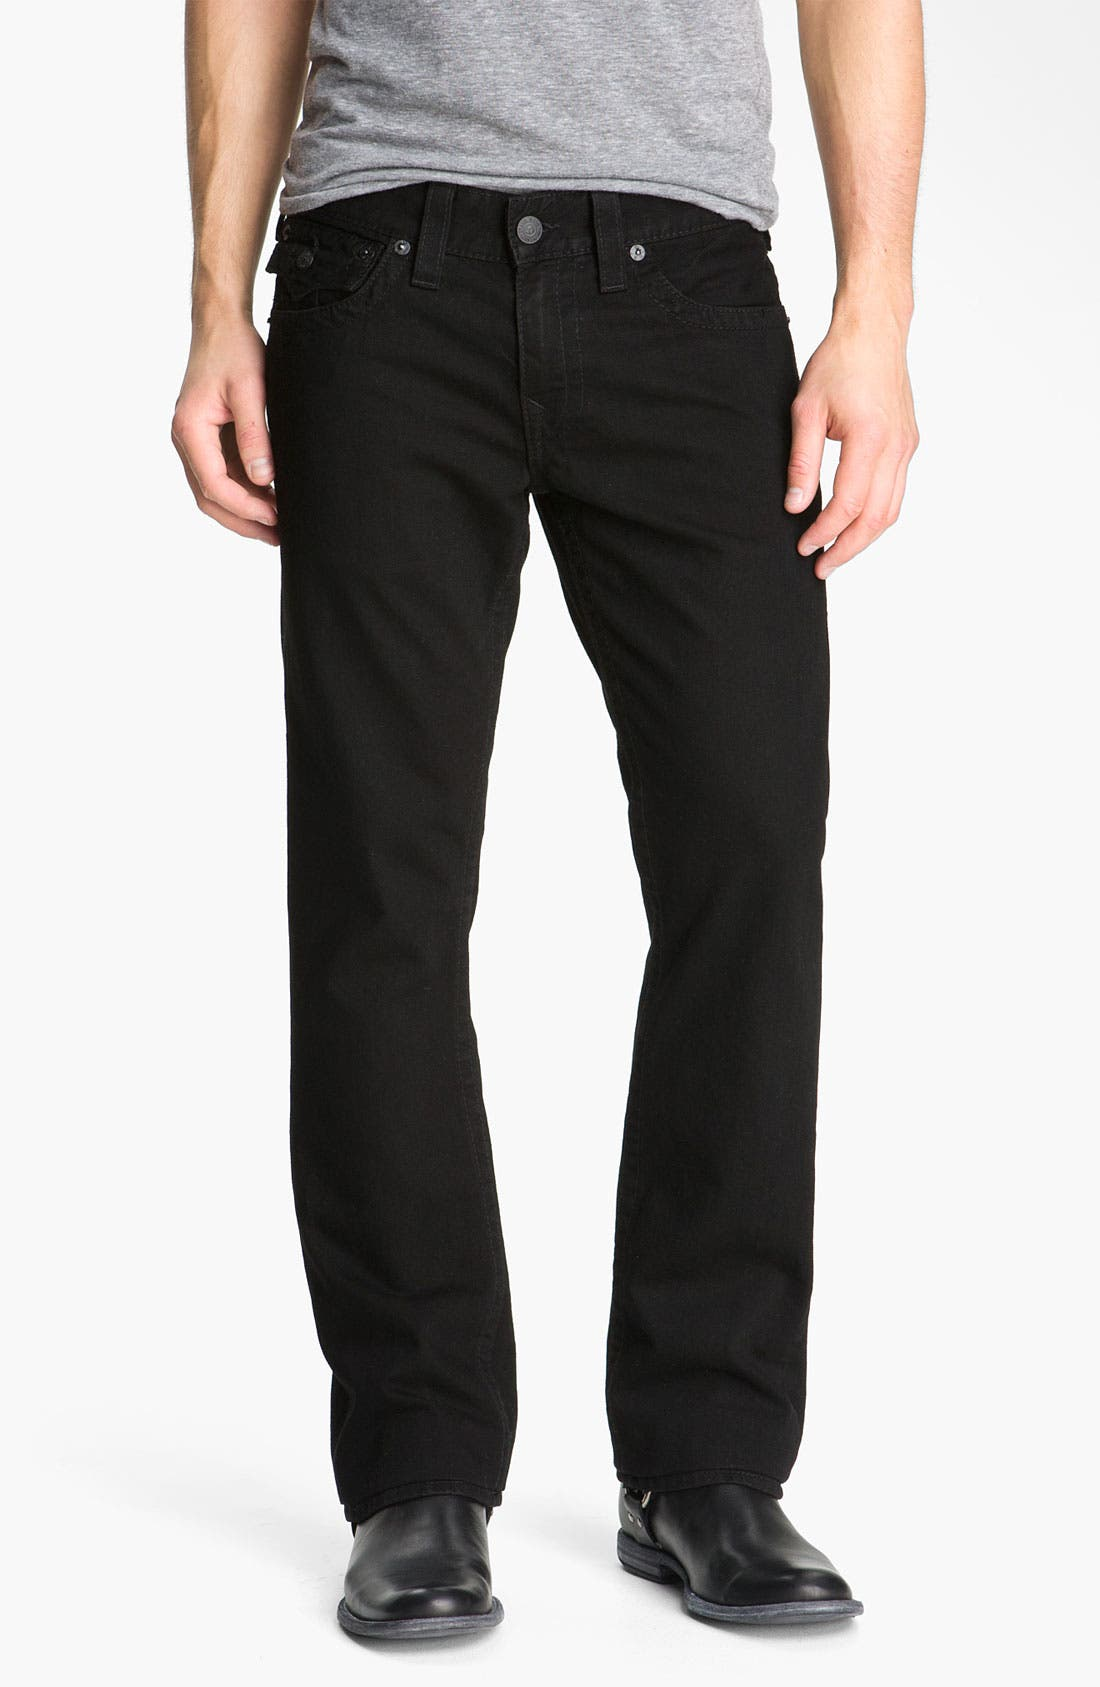 Alternate Image 2  - True Religion Brand Jeans 'Ricky' Relaxed Fit Jeans (Superfly)